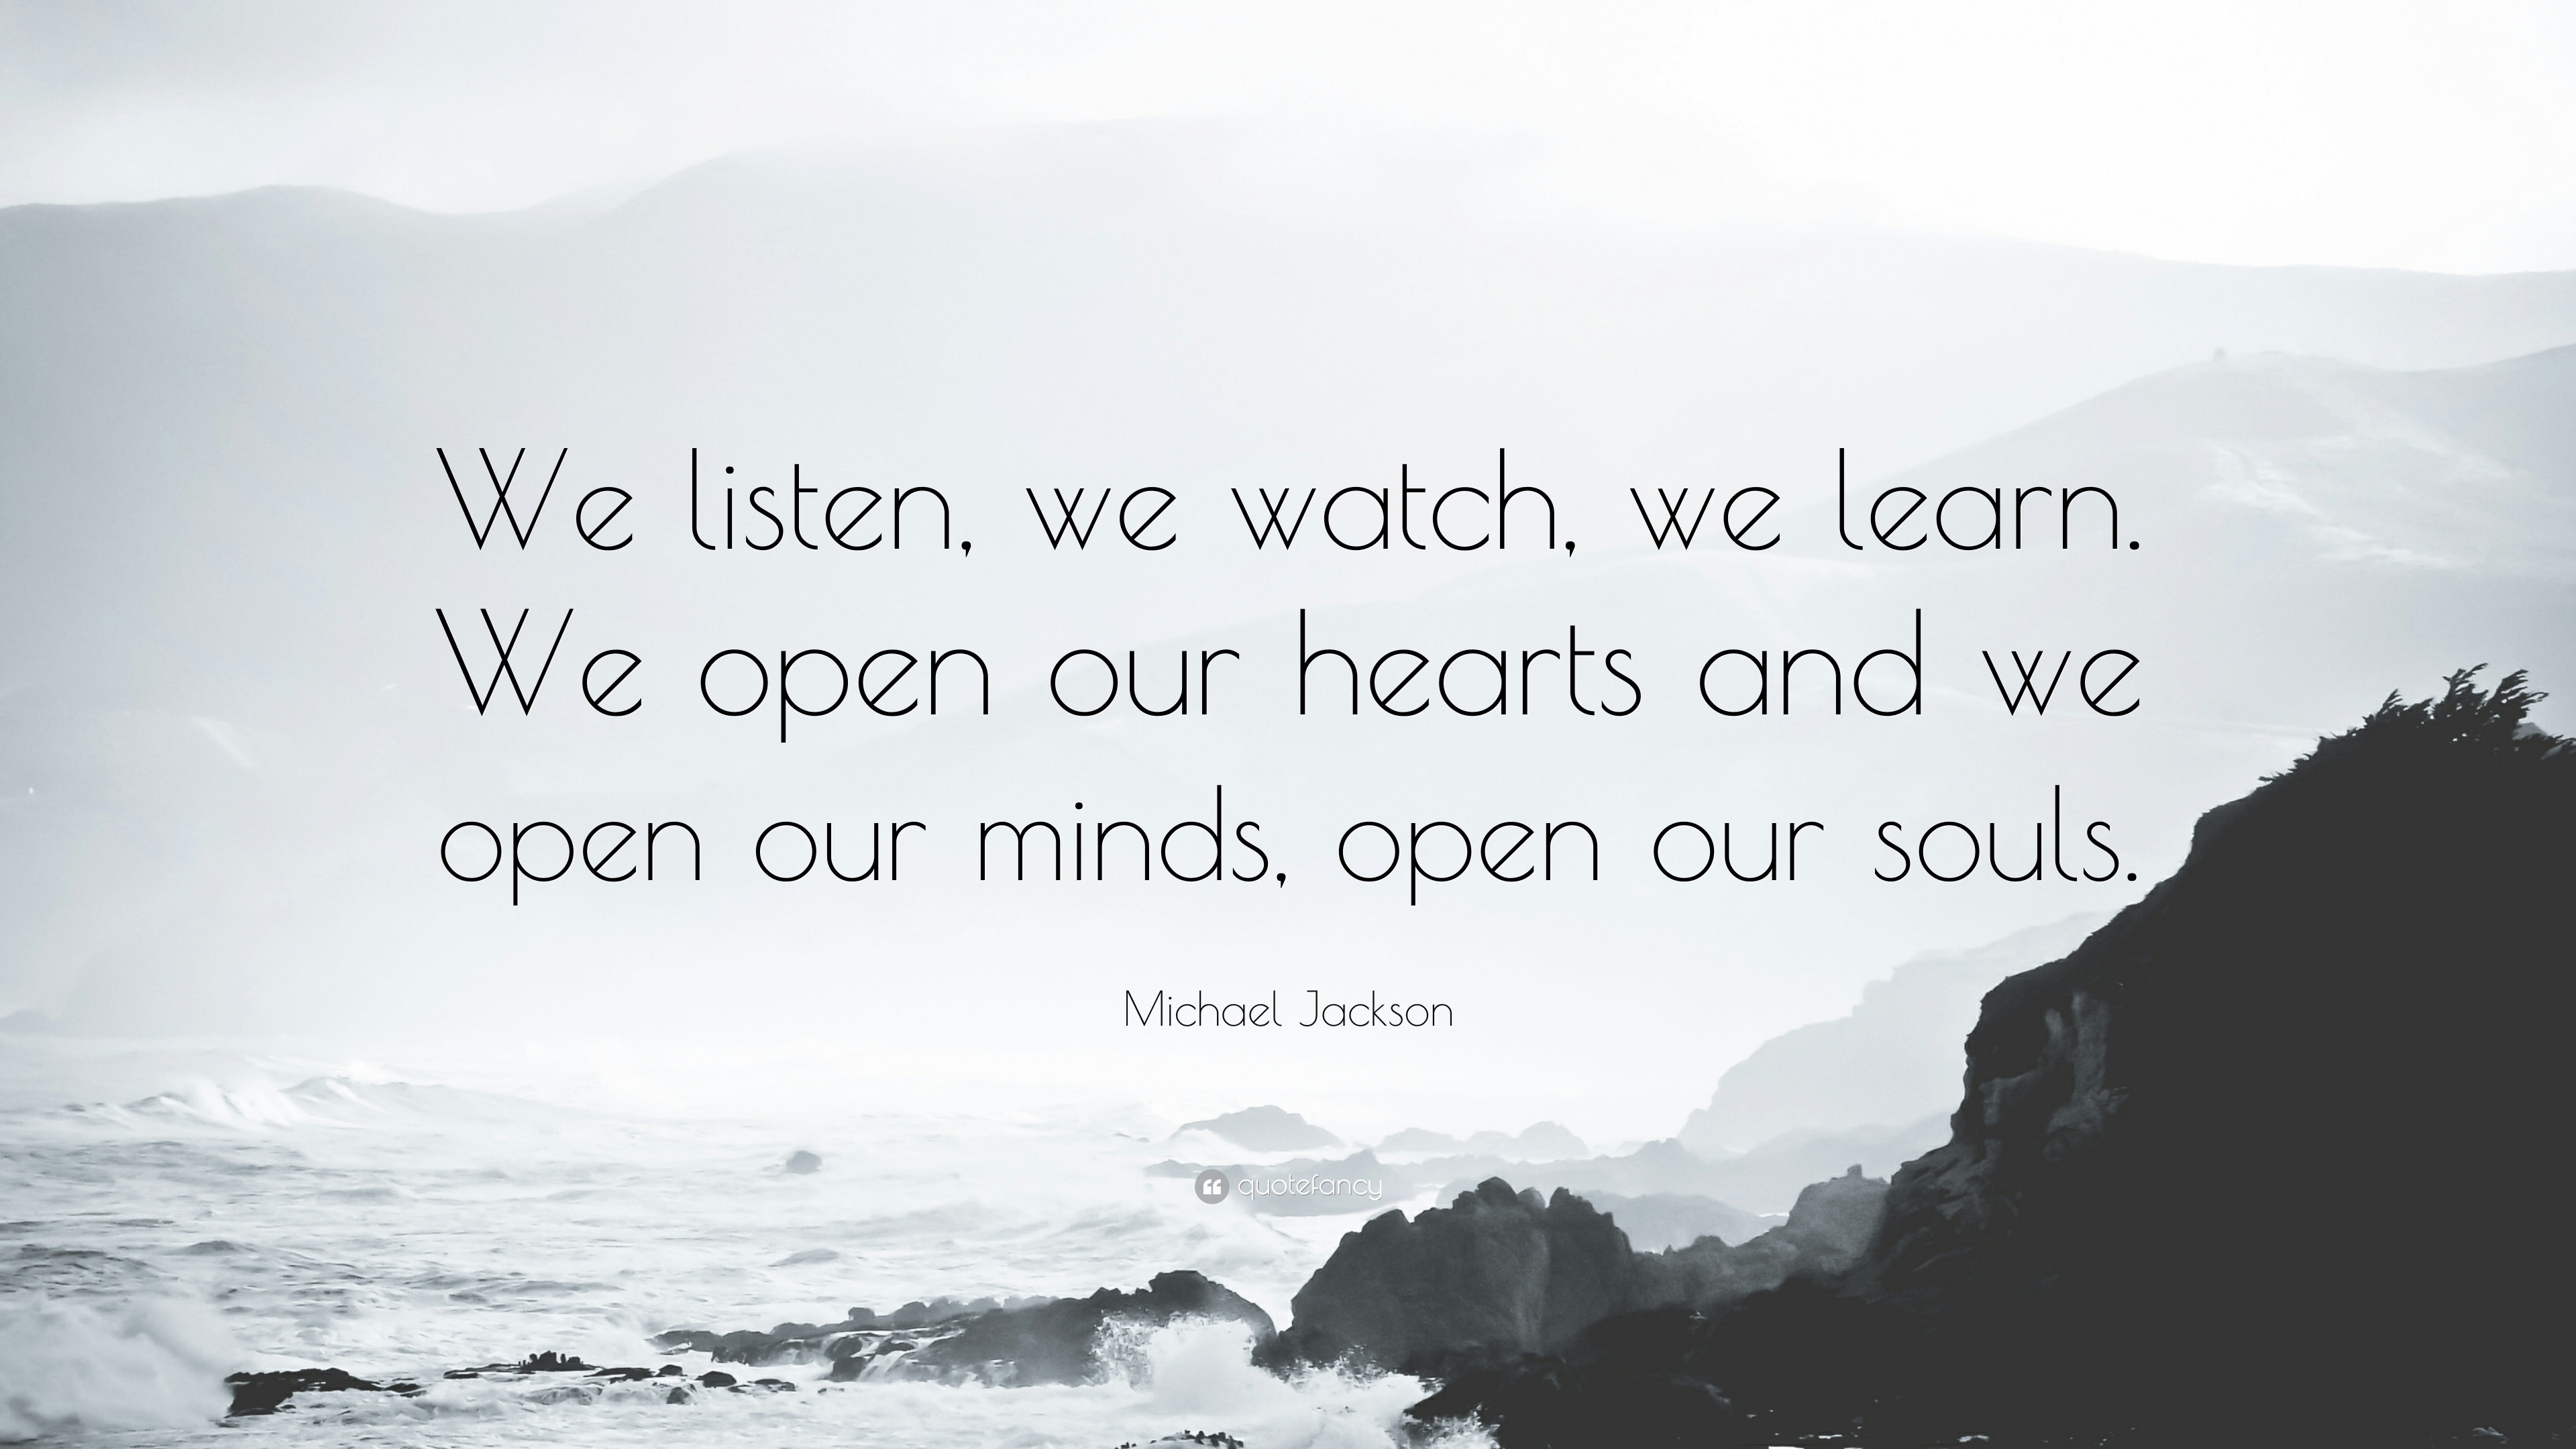 When we open our hearts 9